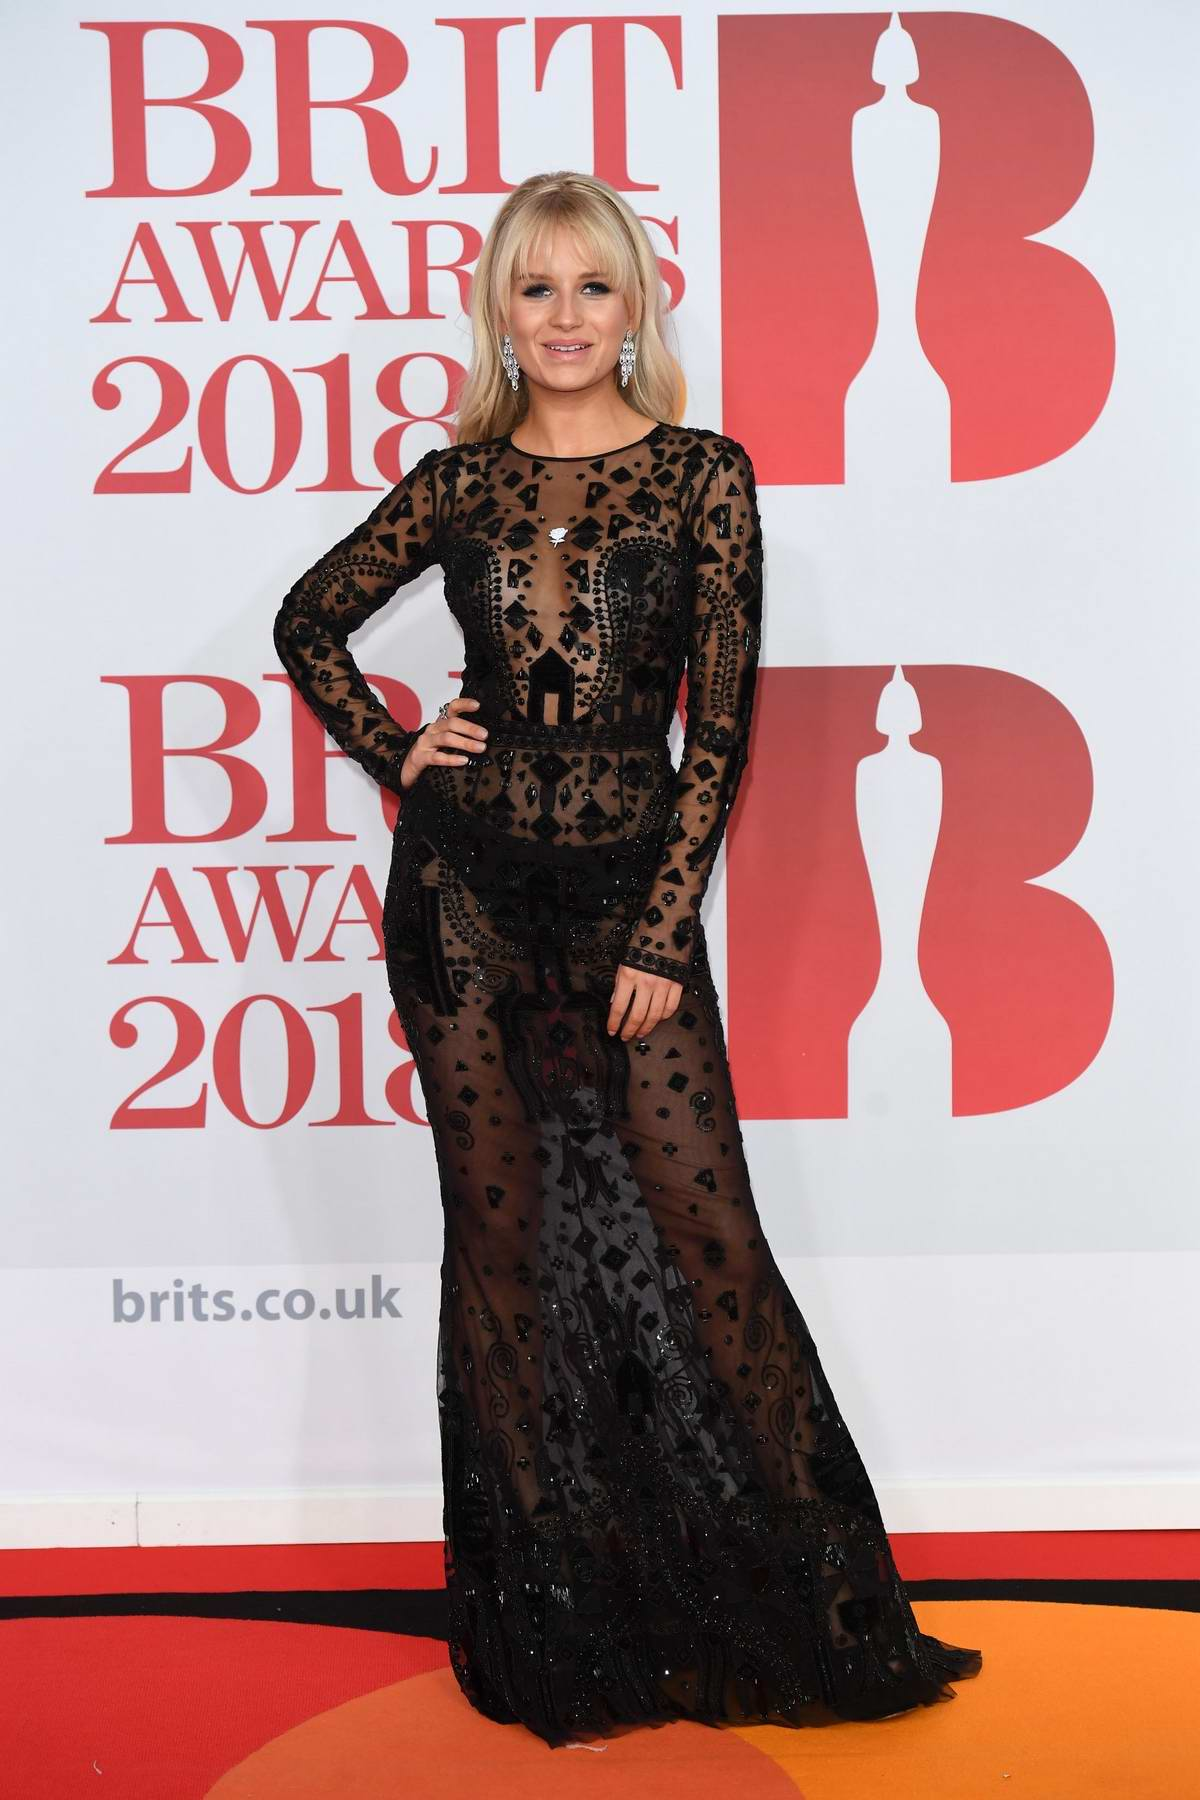 Lottie Moss attends the 38th Brit Awards, held at the O2 Arena in London